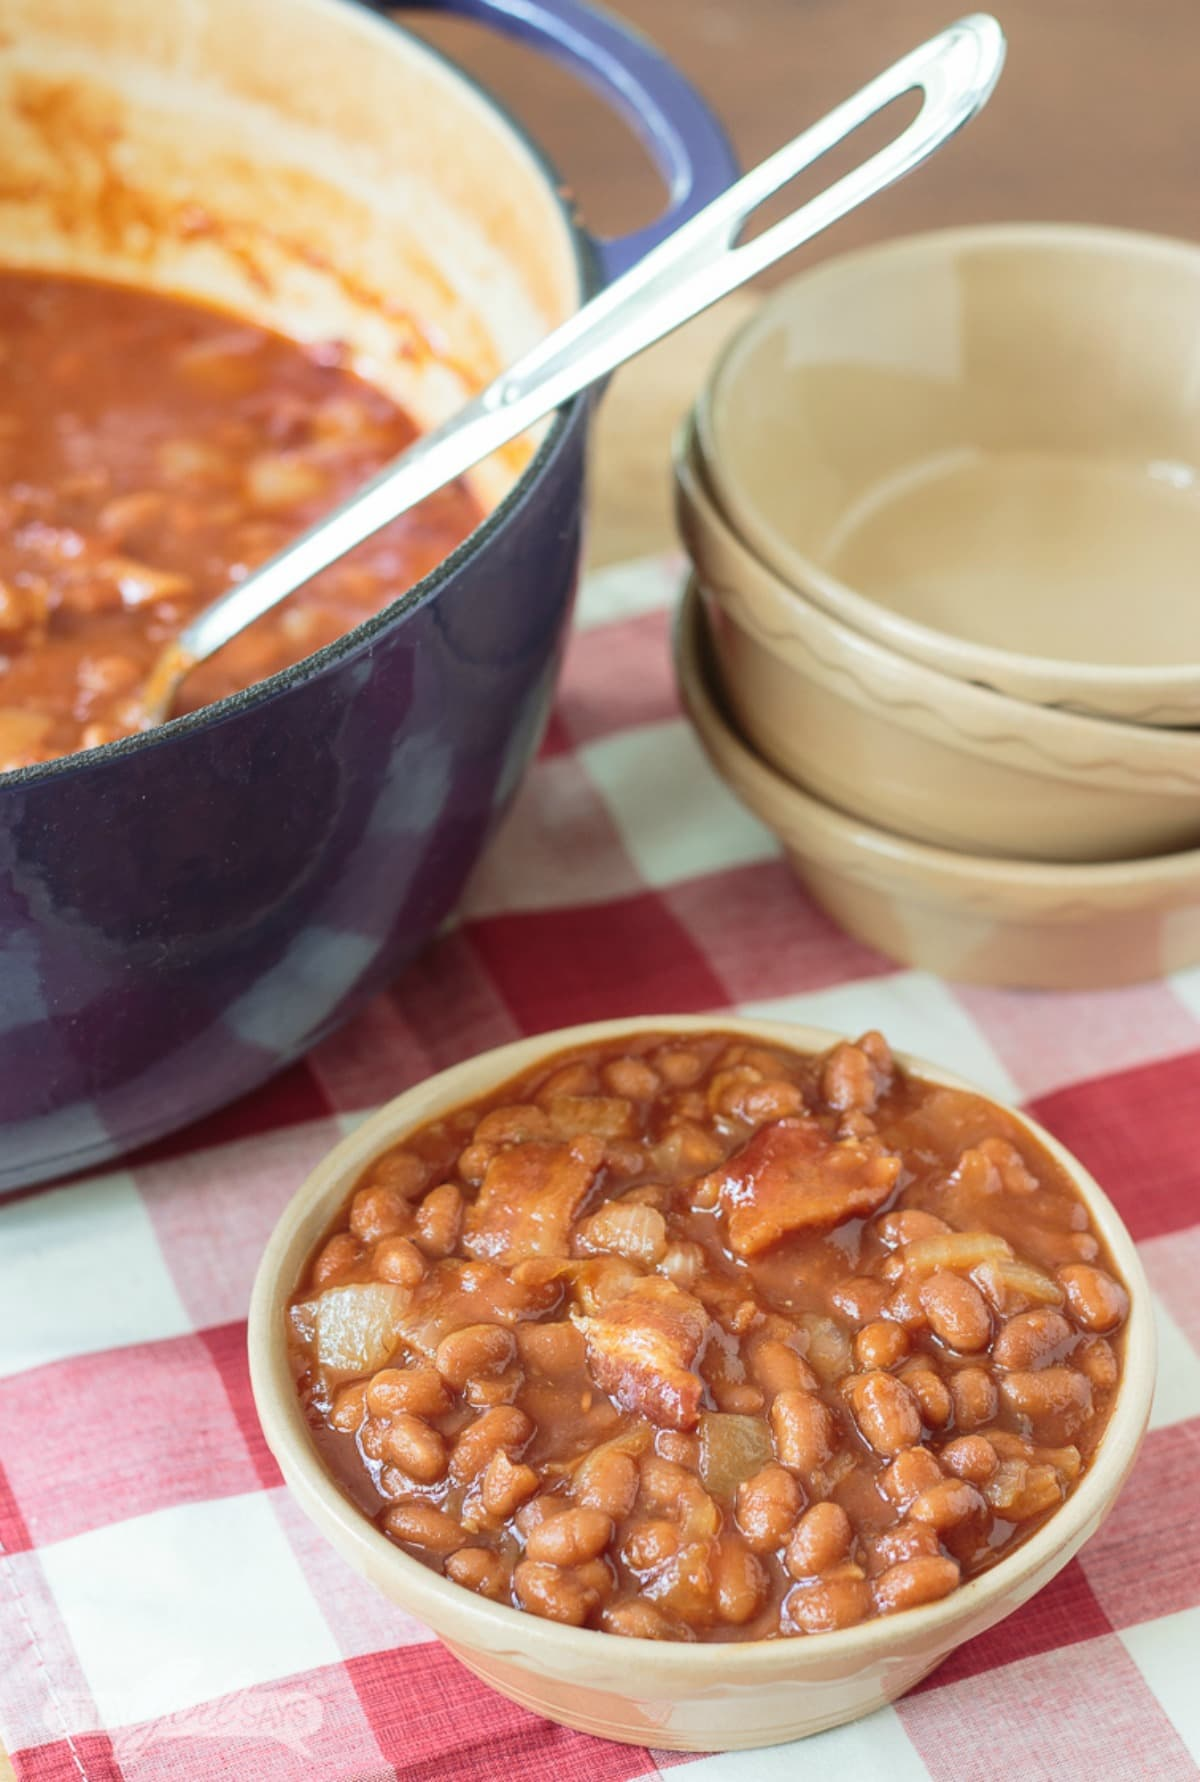 Southern Baked Beans Recipe with Bacon